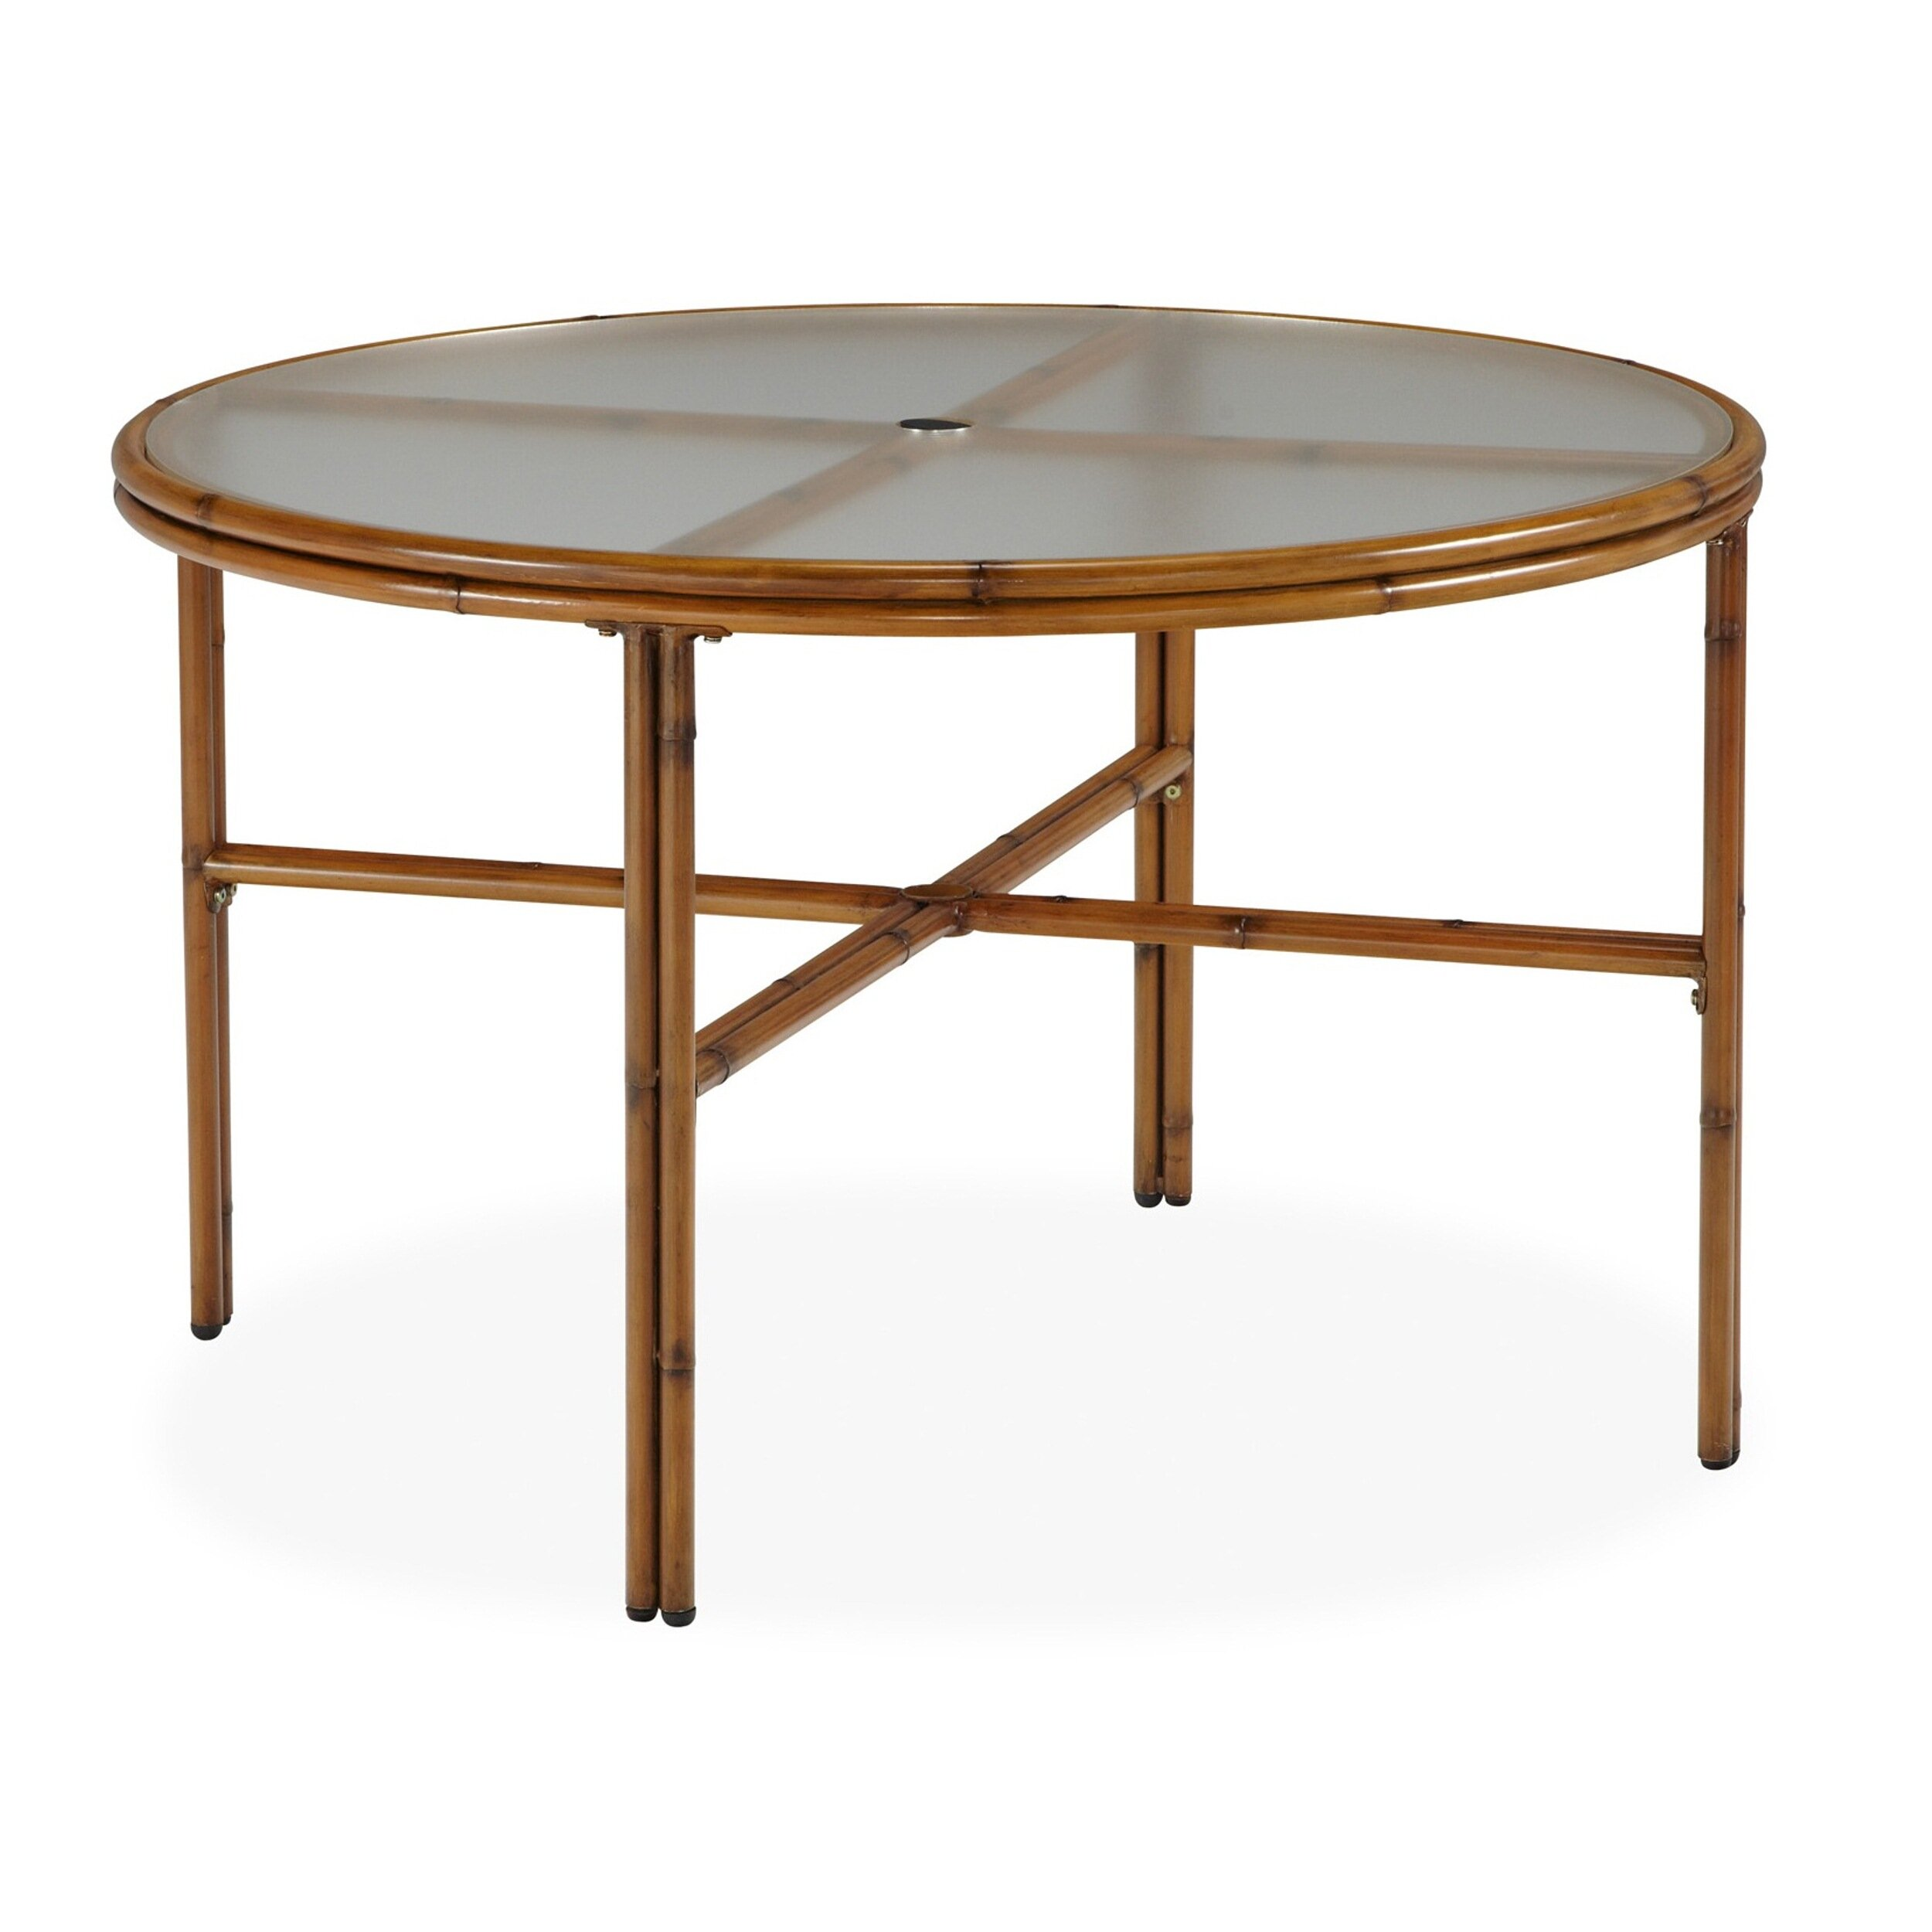 Home styles bimini jim dining table reviews wayfair for Html table style